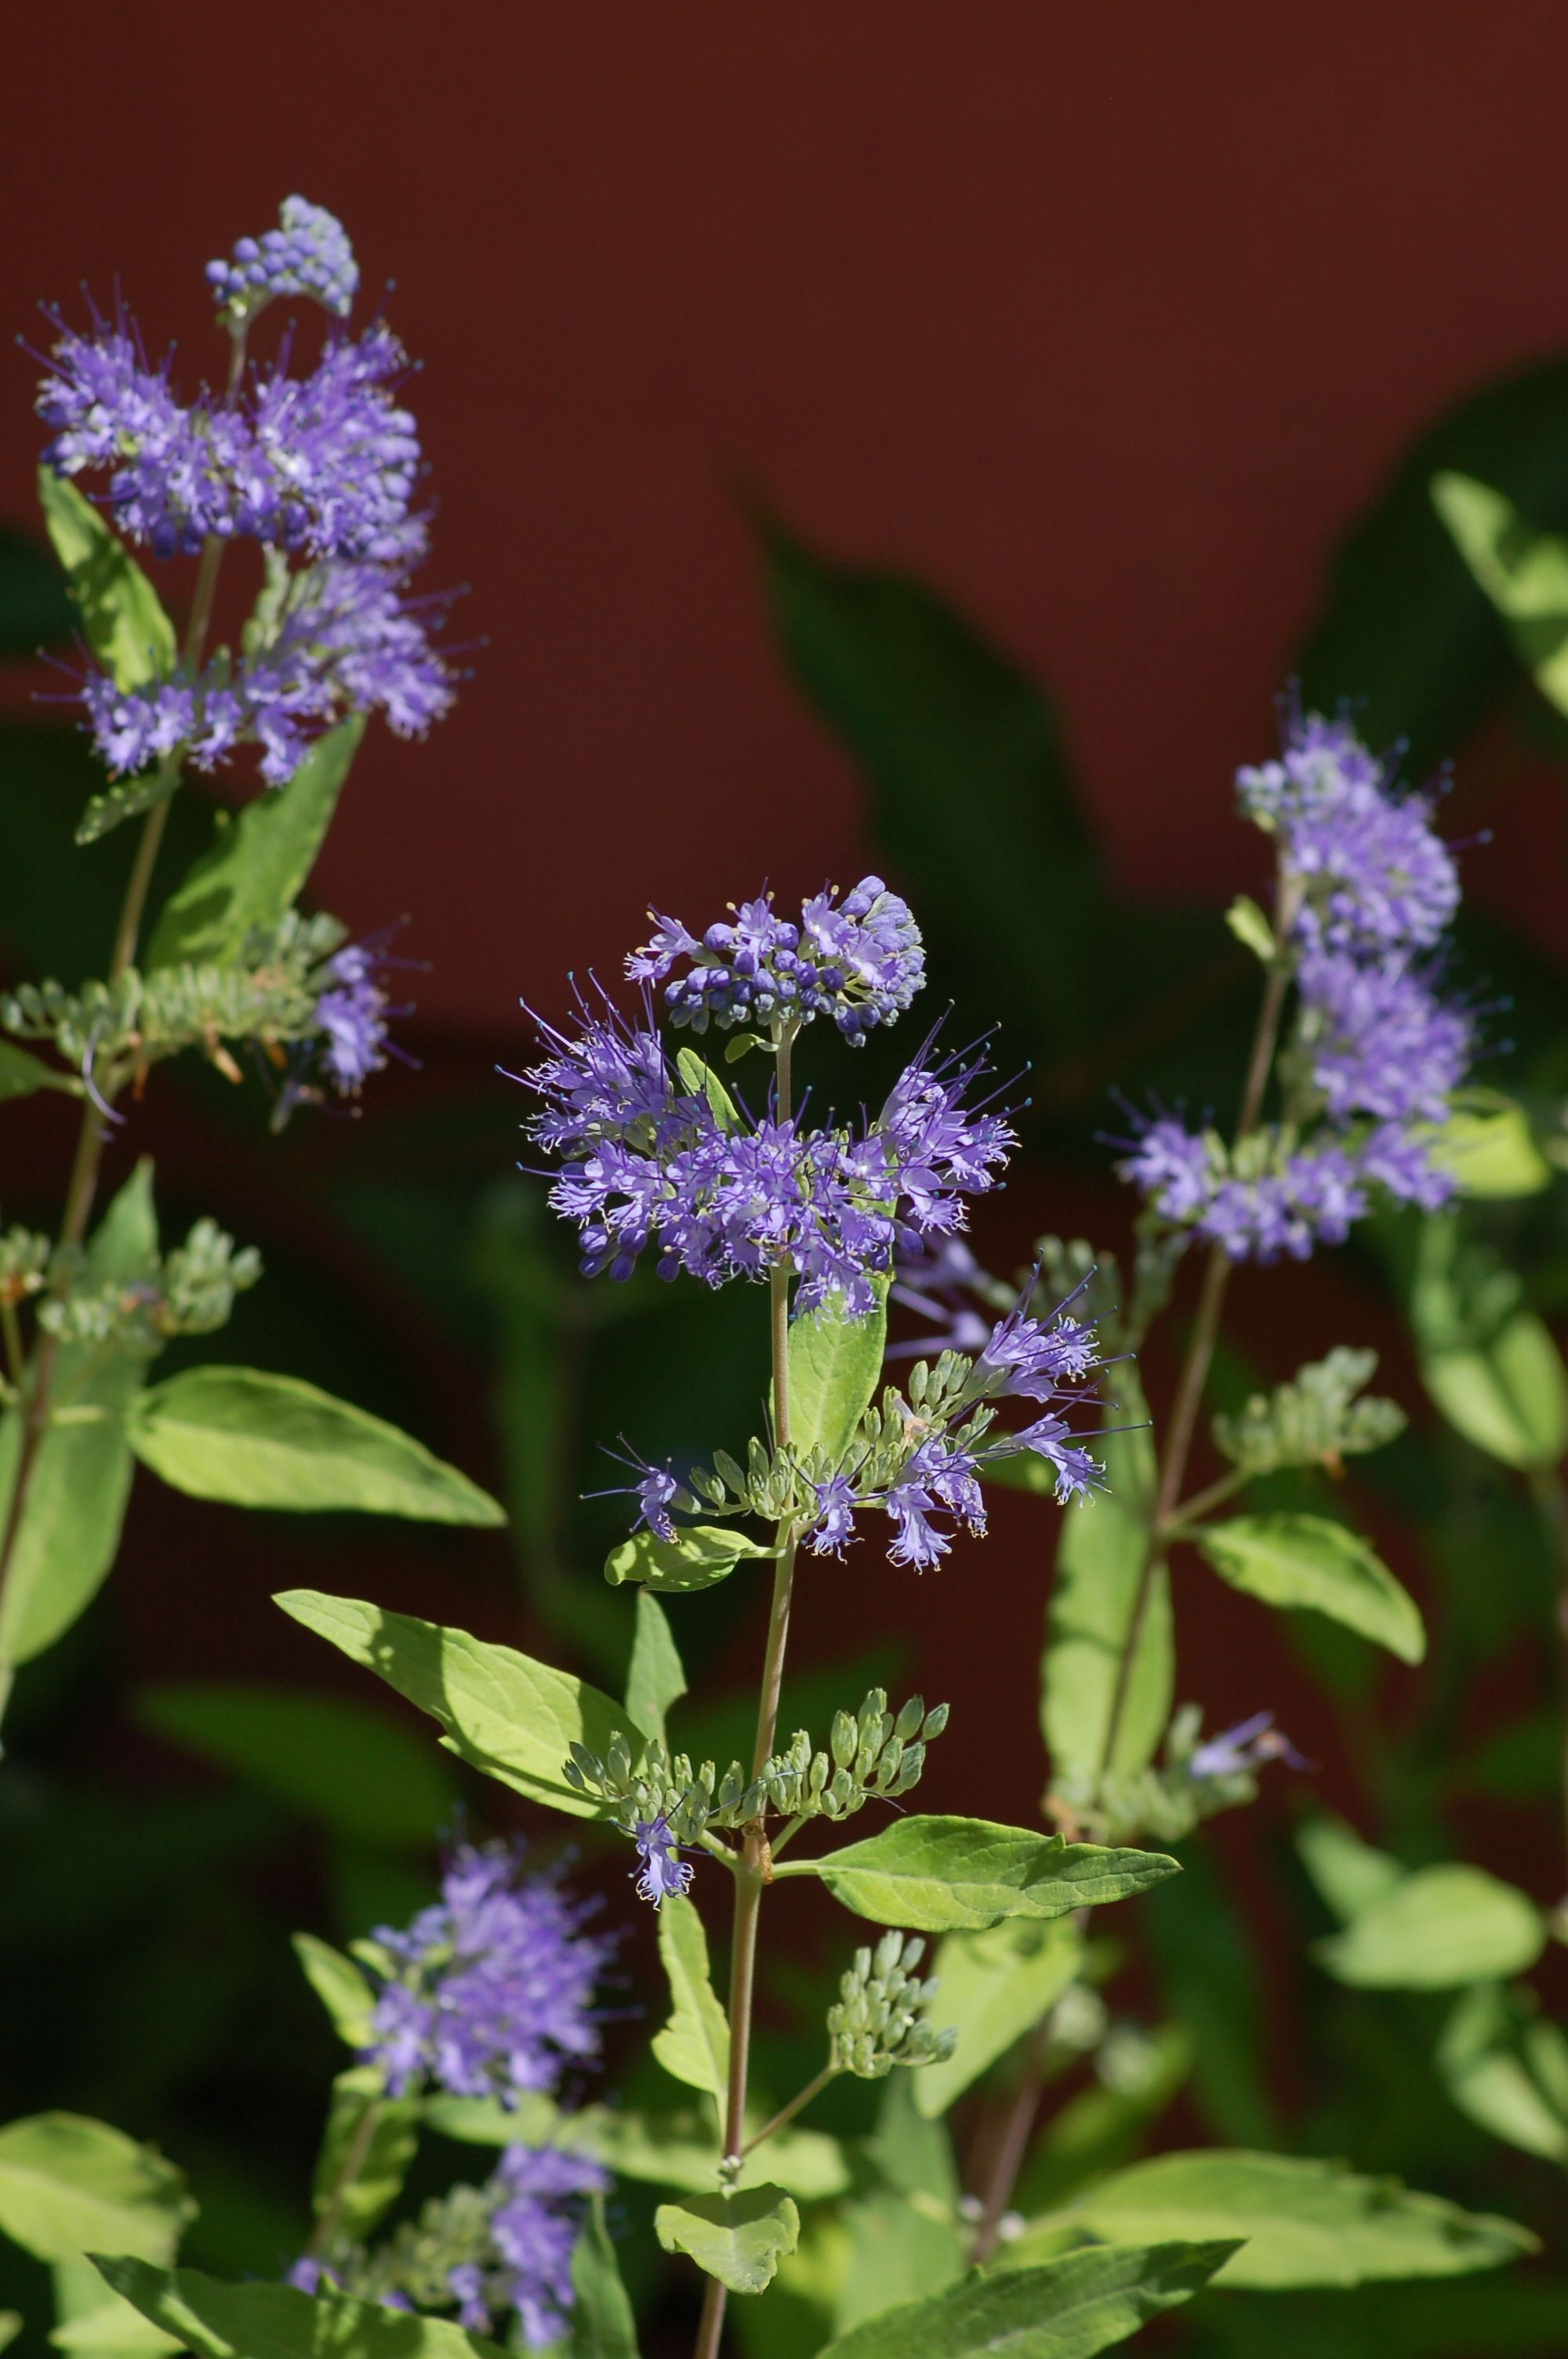 Bluebeard (Caryopteris) is a late-blooming shrub. The fact that it blooms so late in the summer makes it useful for extending the season of floral color in your yard. It also attracts honey bees and butterflies, as I relate here: http://landscaping.about.com/od/galleryoflandscapephotos/ig/Pictures_Flowering_Shrubs/caryopteris_with_bee.htm